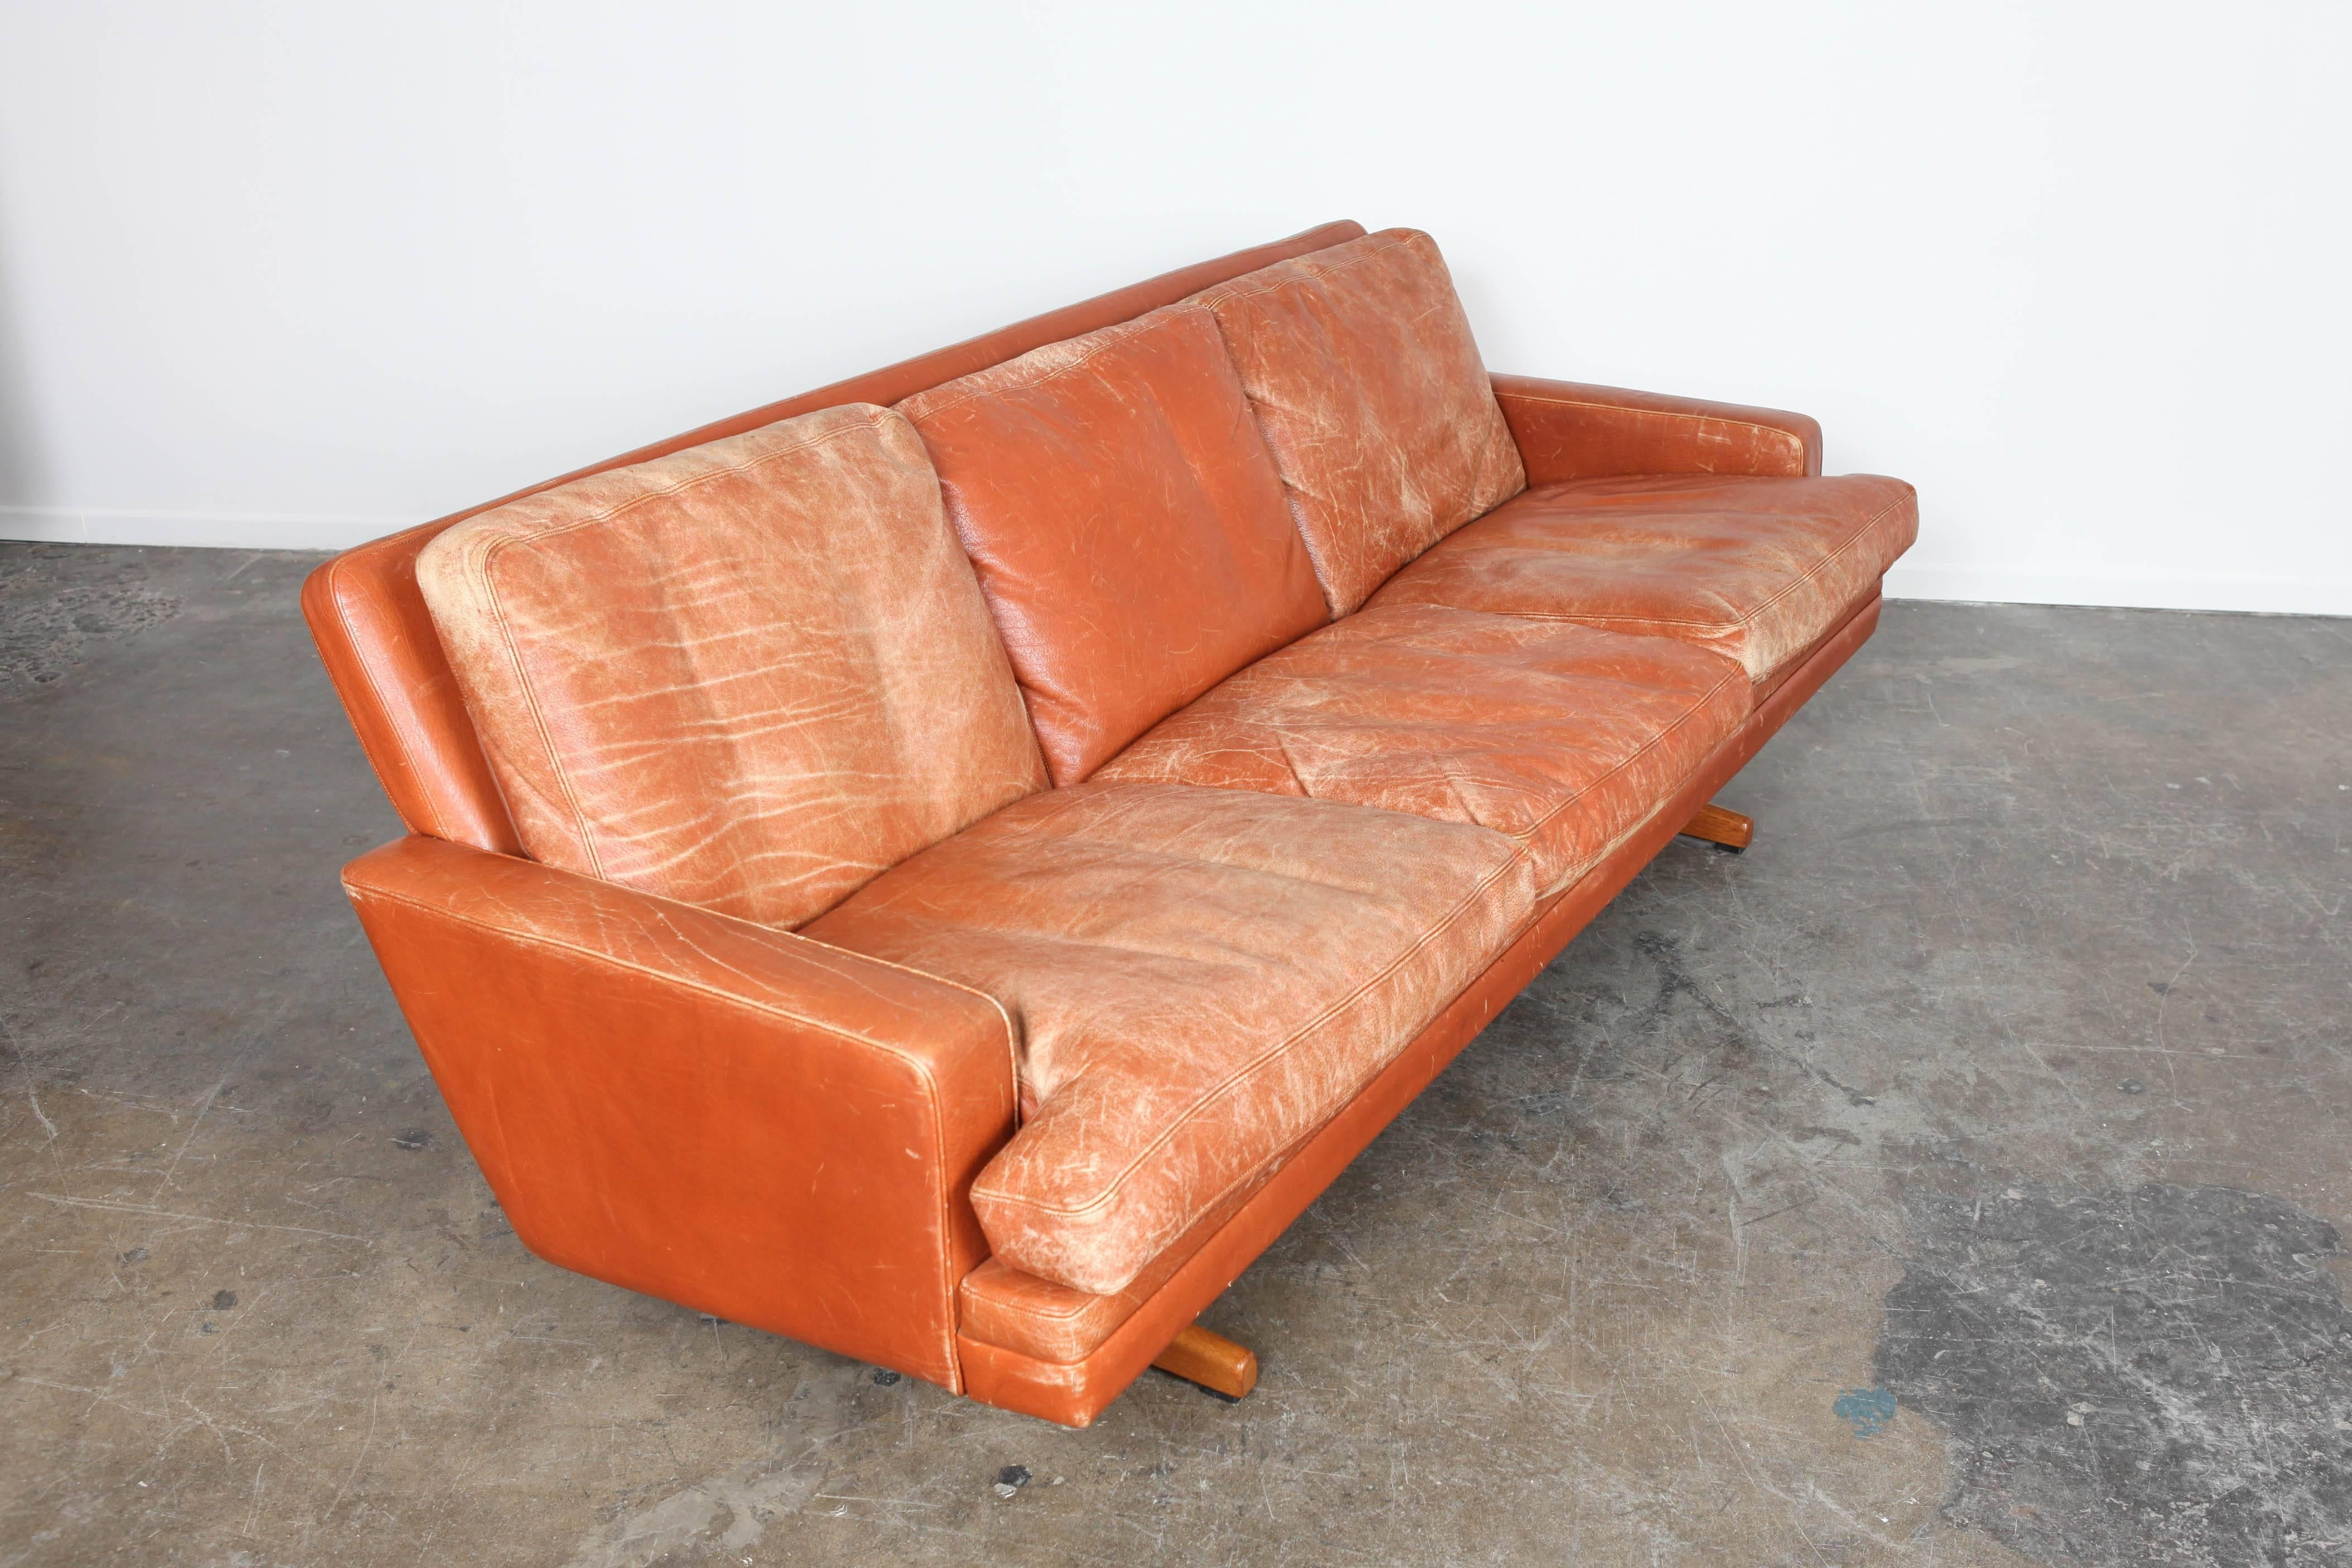 Exceptionnel Norwegian Mid Century Modern Burnt Orange Leather Sofa By Fredrik Kayser In  Good Condition